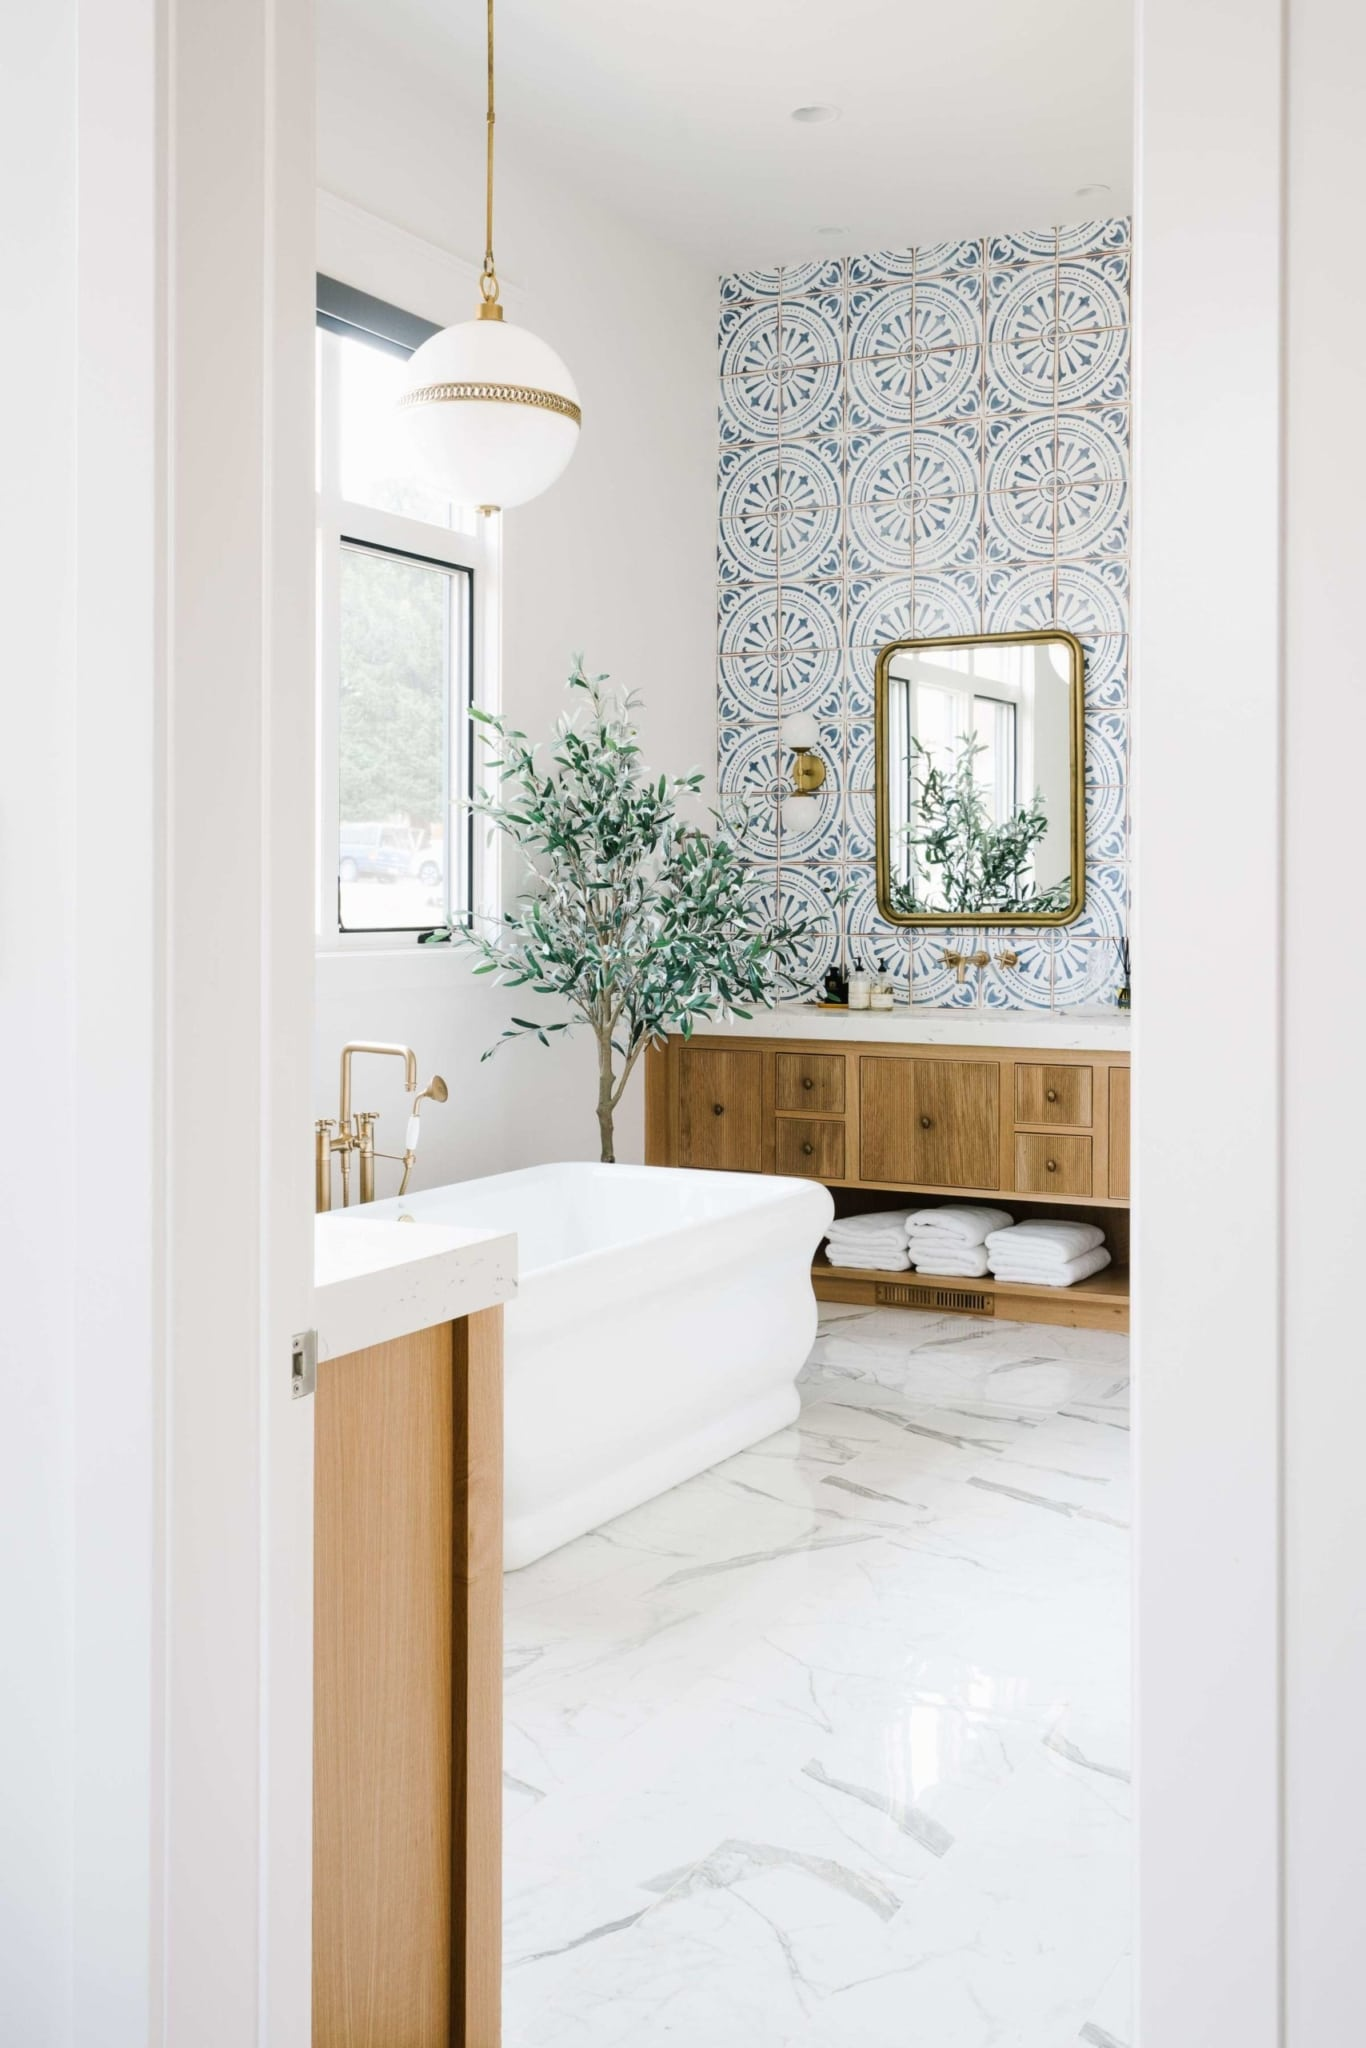 House of Jade bathroom with blue and white tile